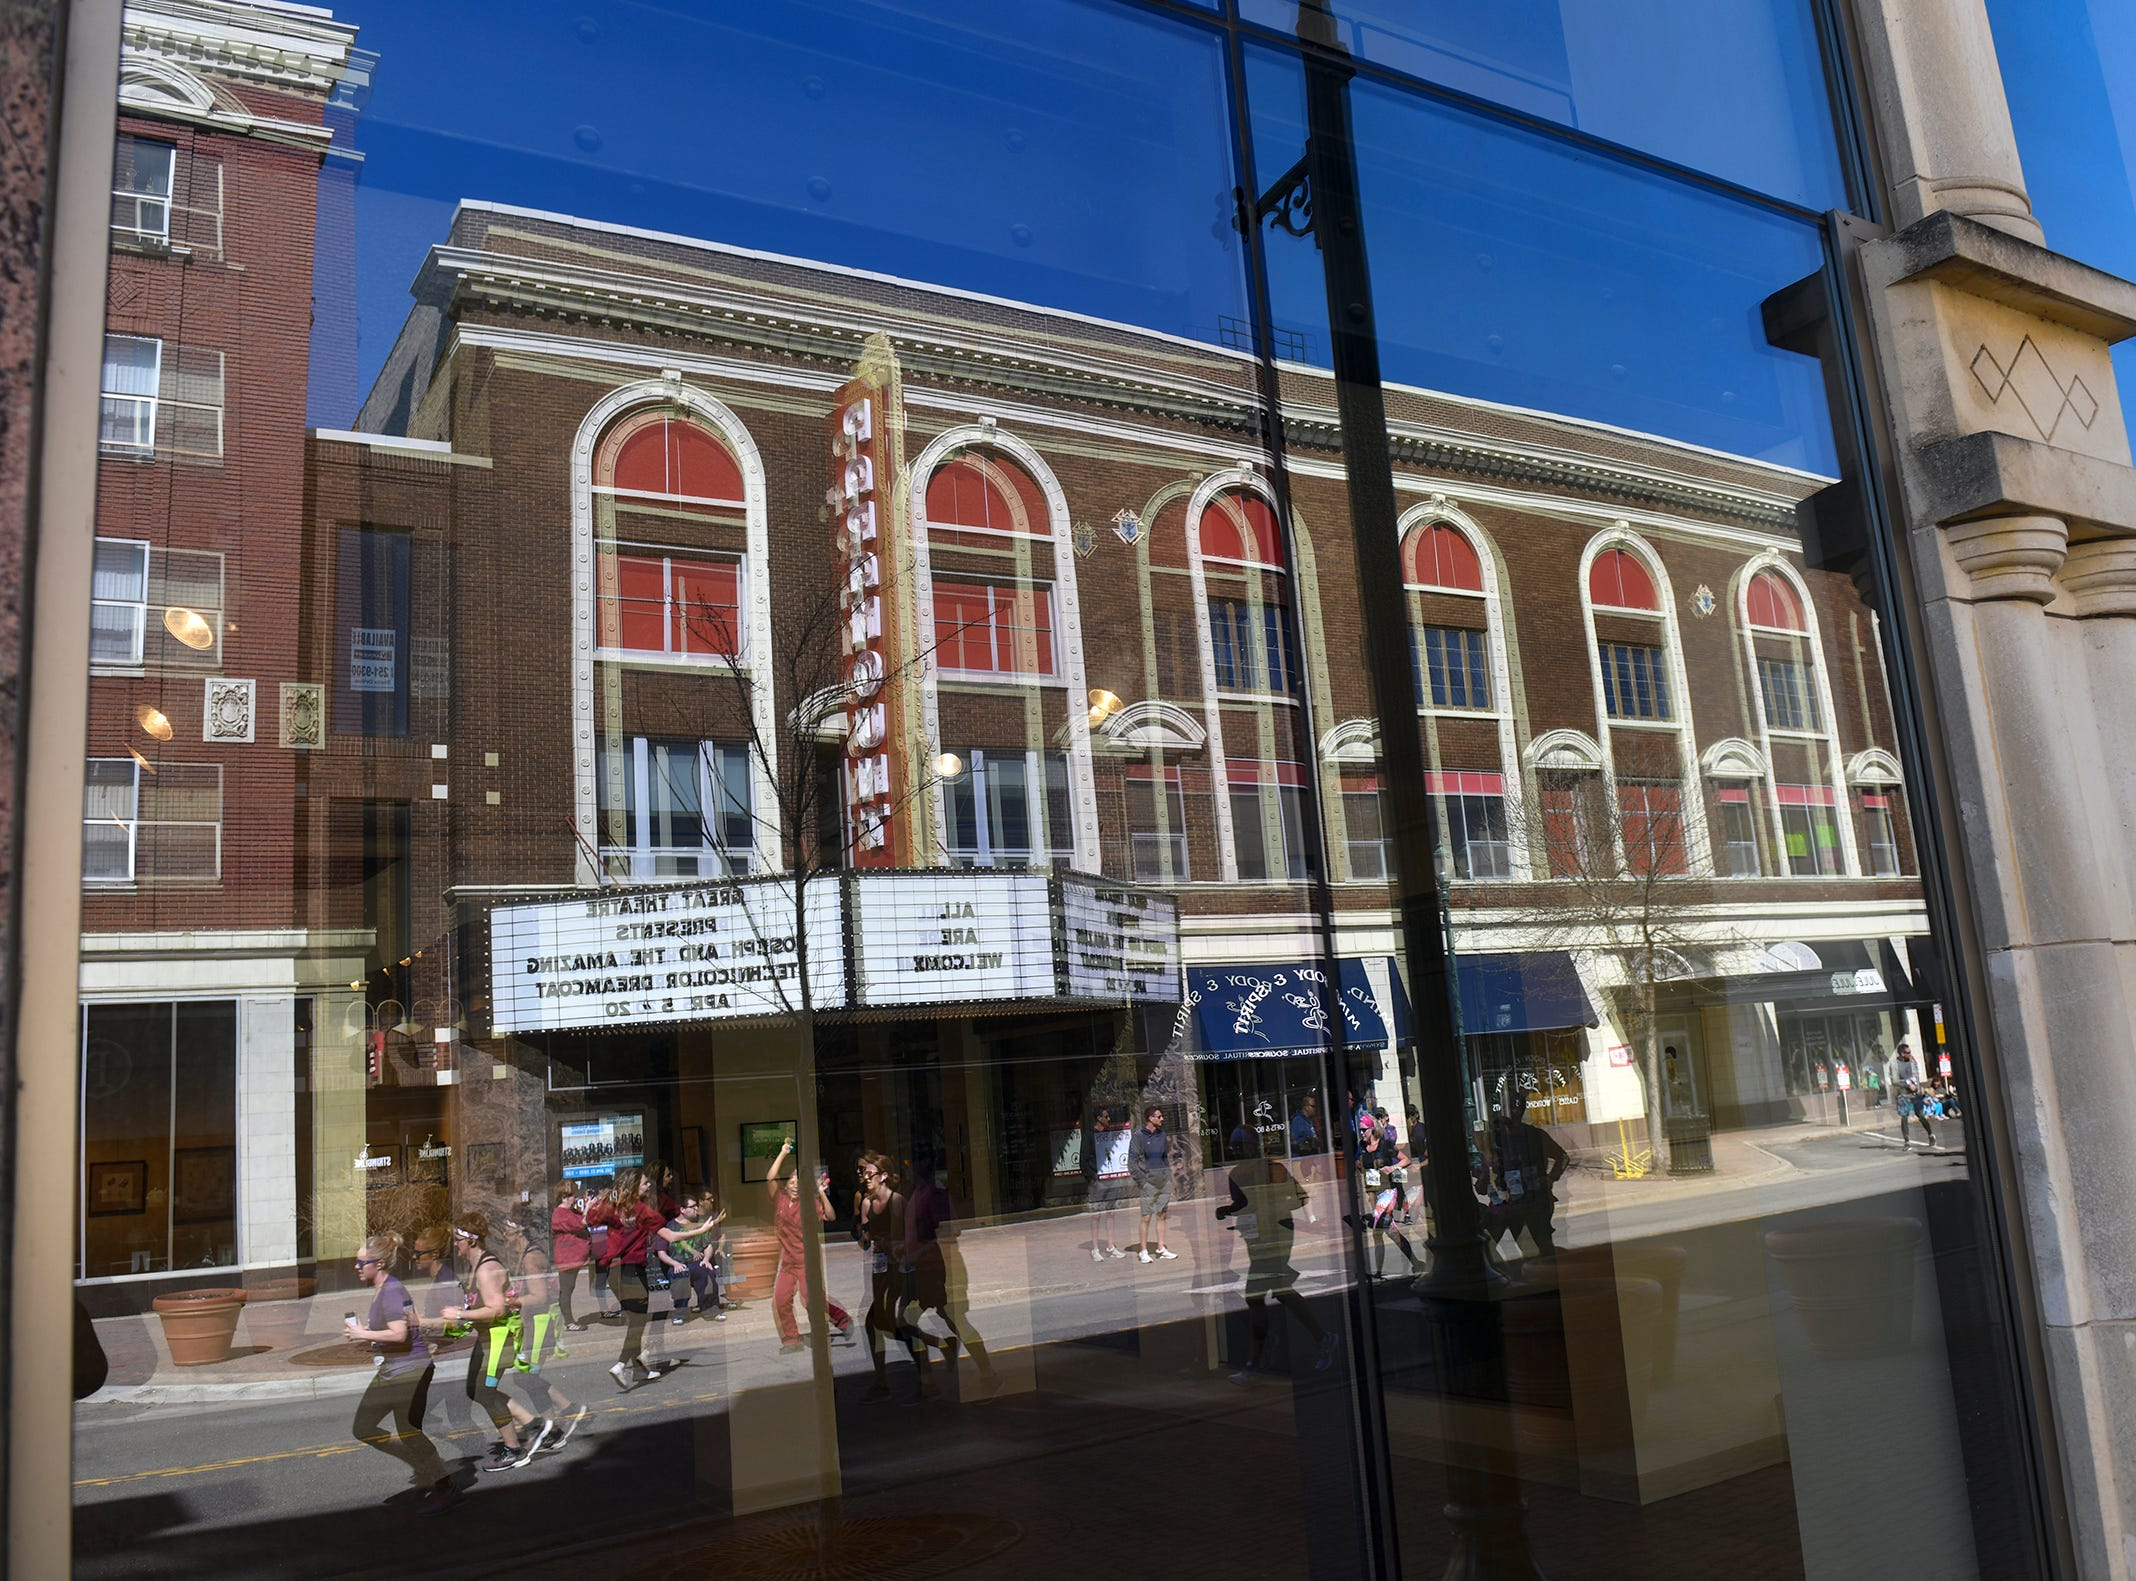 The Paramount Theatre is reflected in windows across the street as runners continue on the race course down St. Germain Street during the Cetera Half Marathon Saturday, April 20, in downtown St. Cloud.